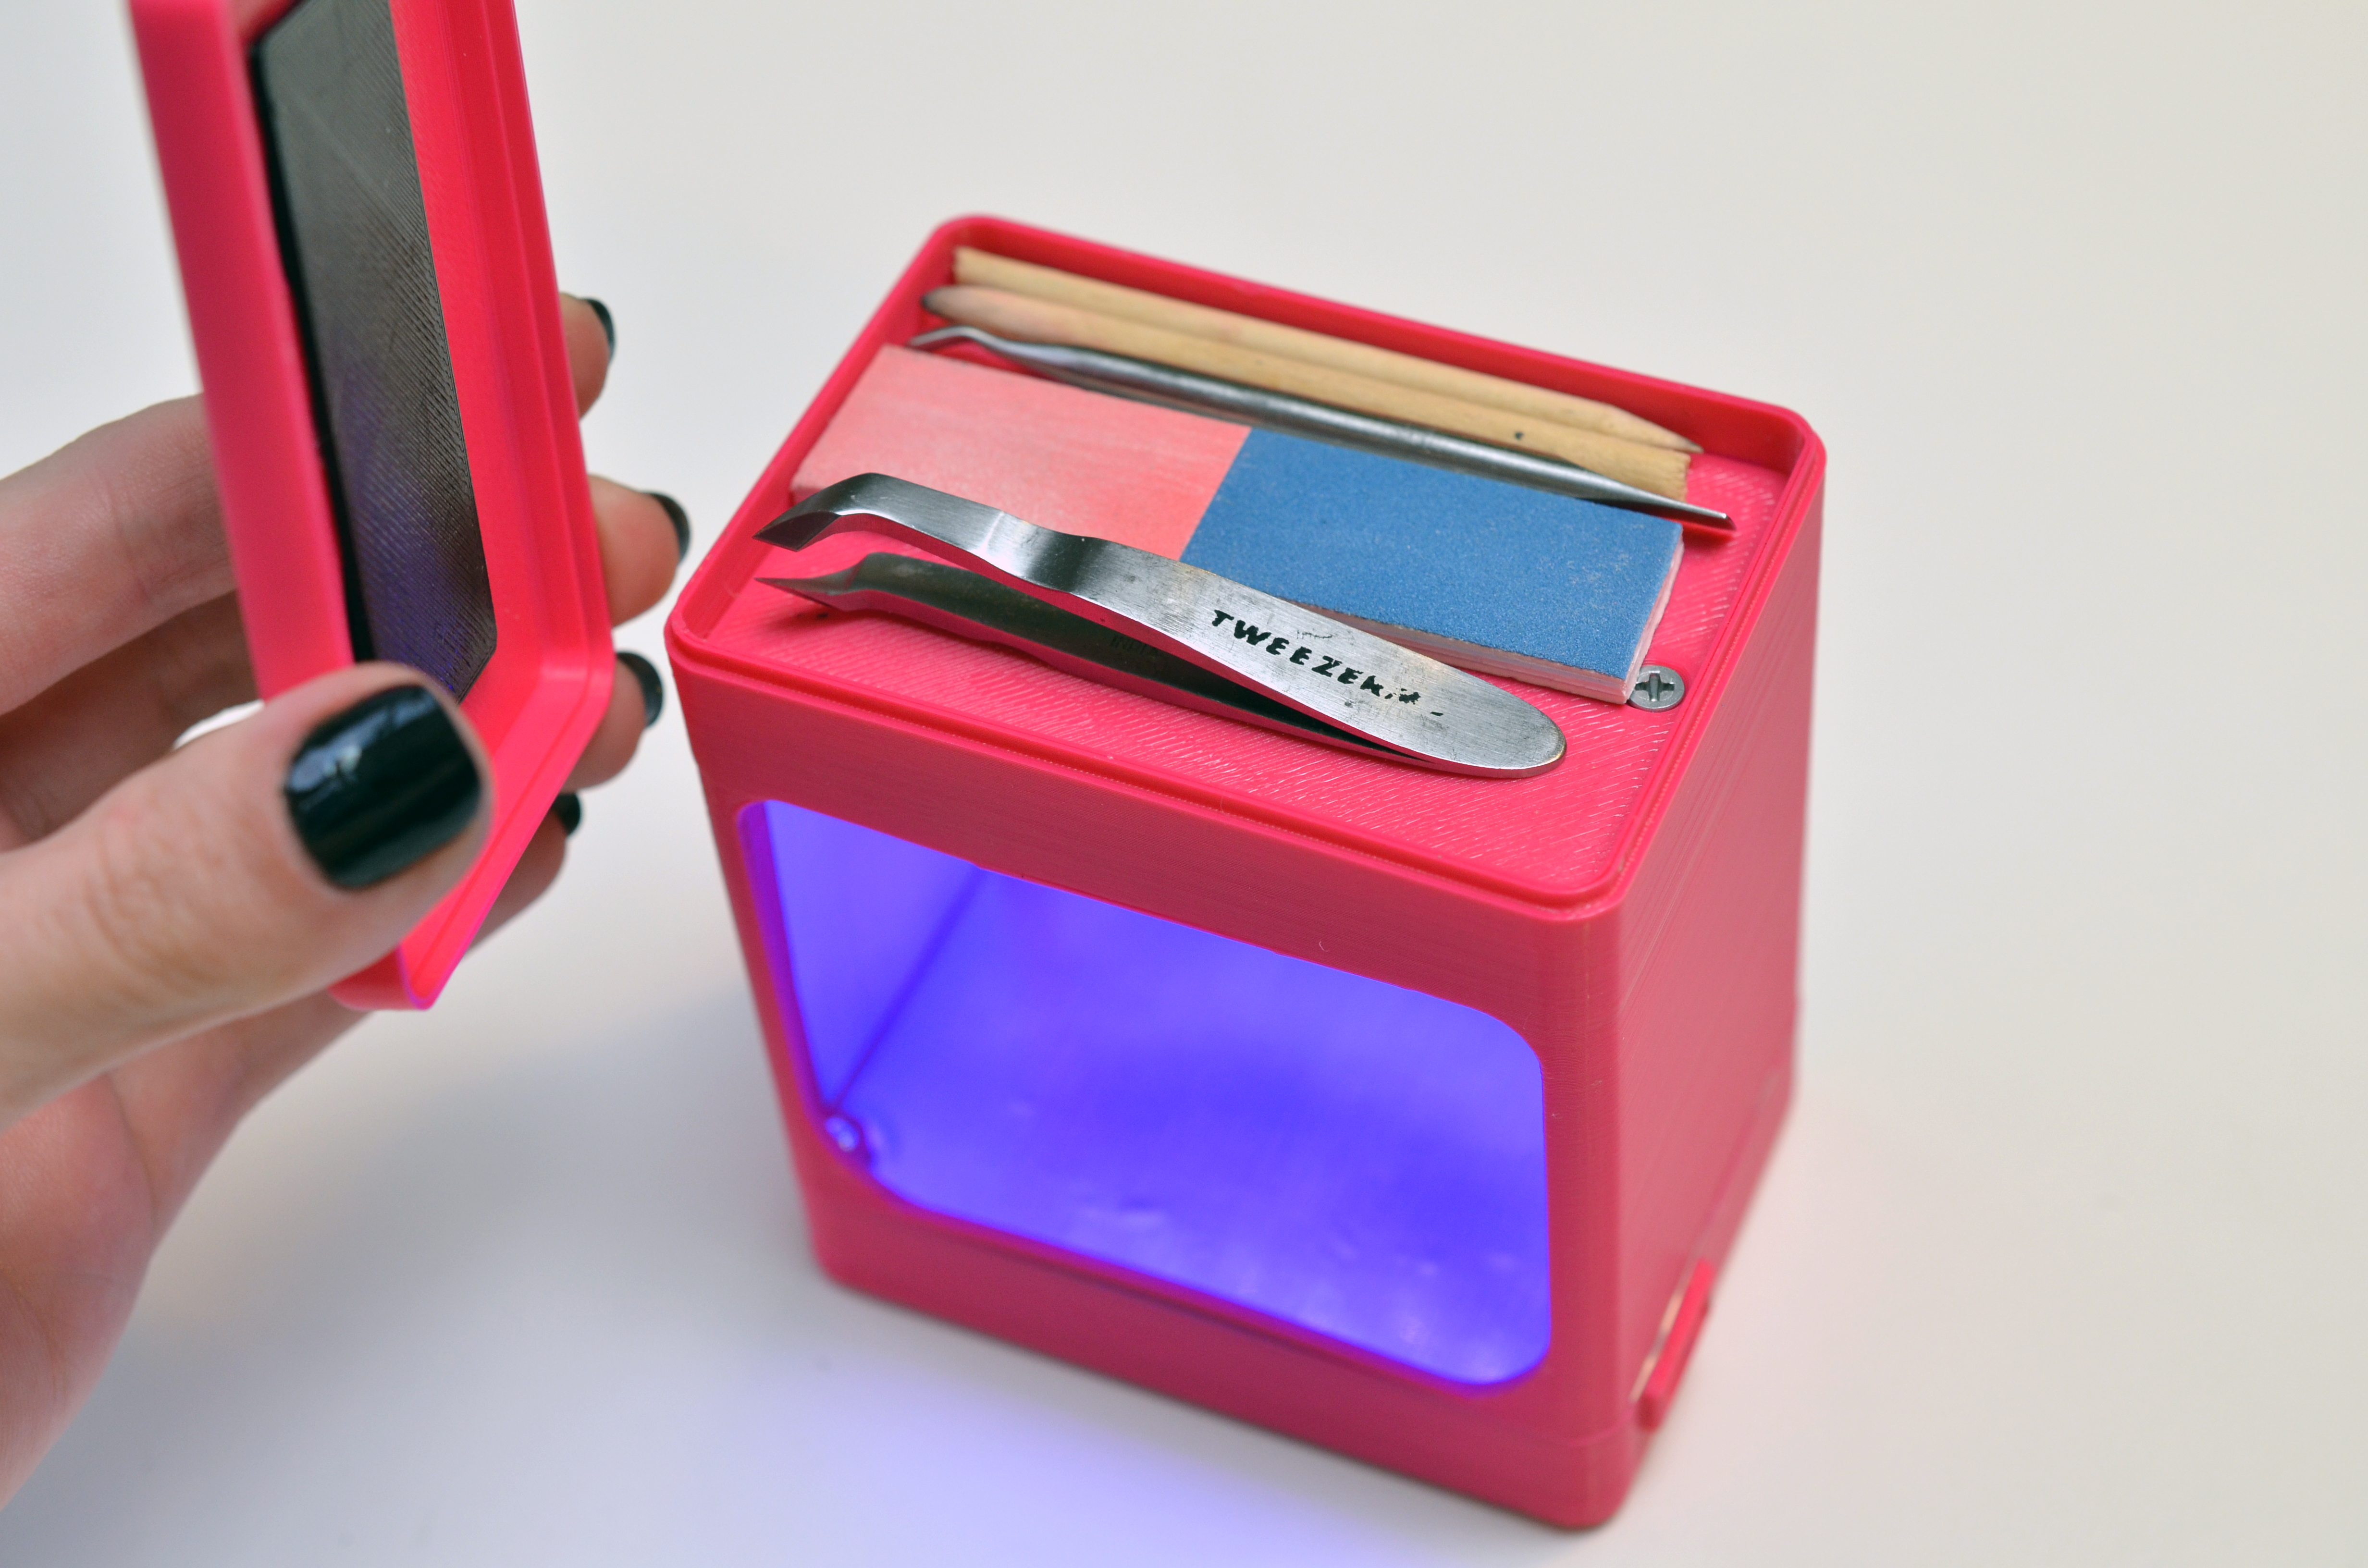 leds_uv-manicure-lamp-compartment.jpg